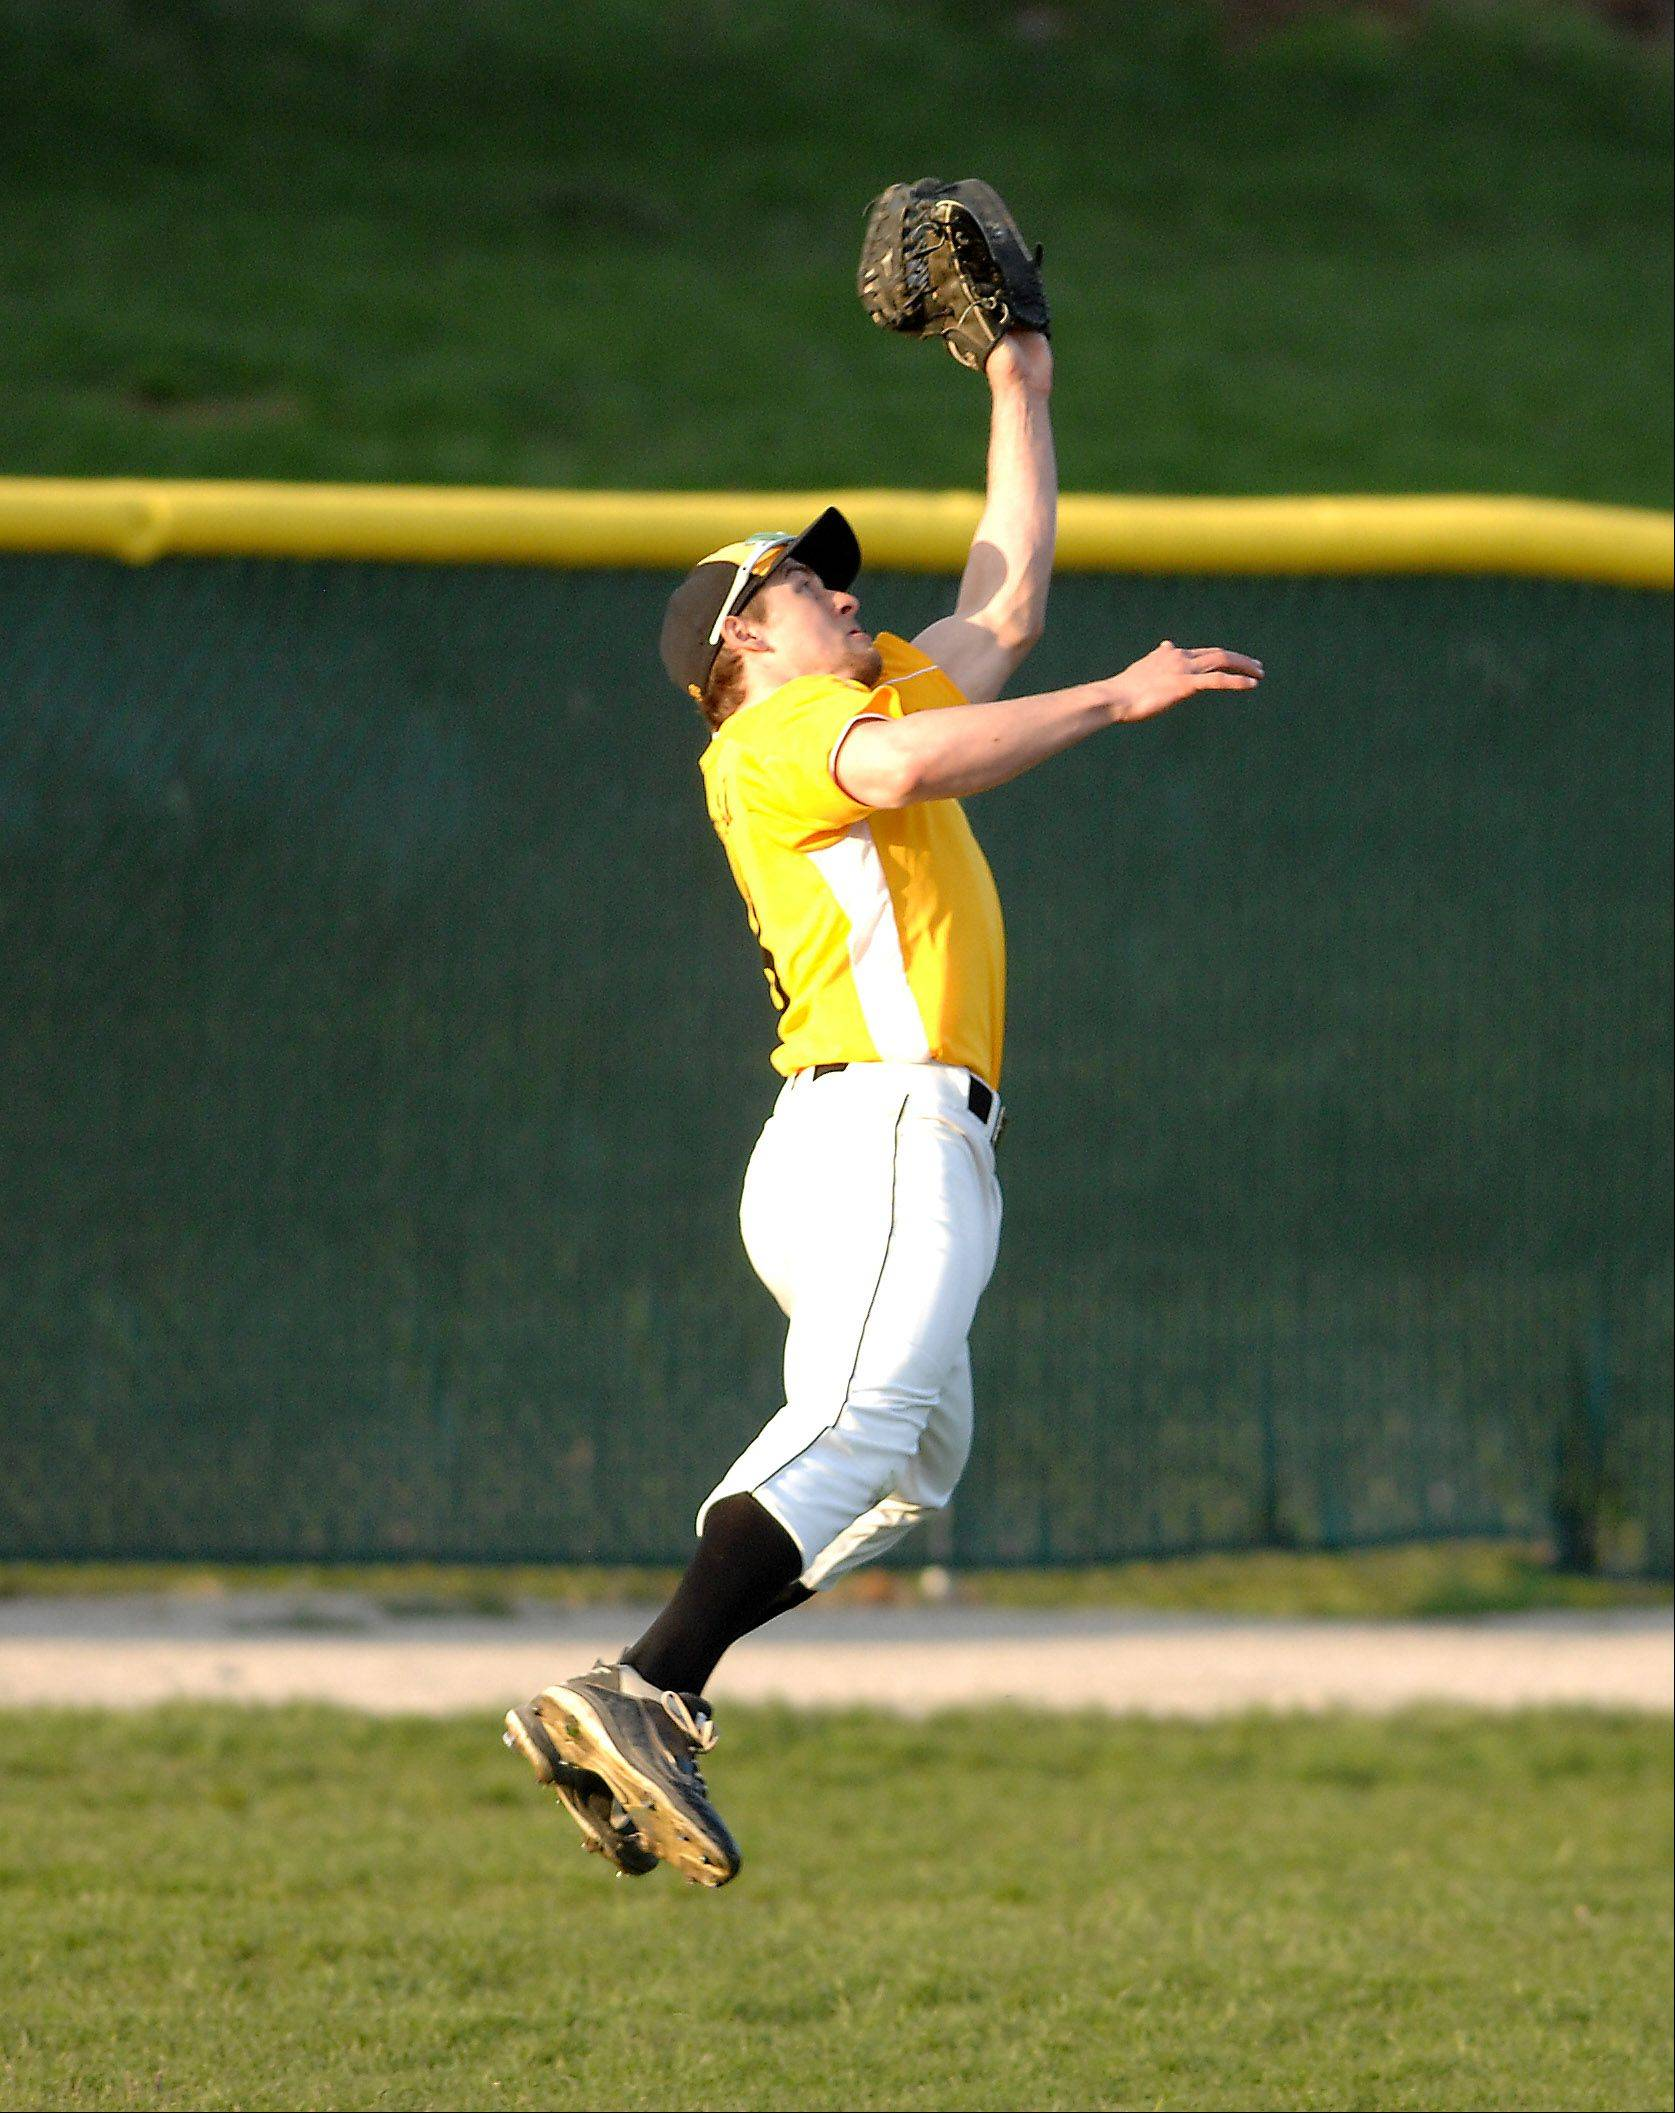 Connor Conzelman of Jacobs makes a leaping catch in left field against Cary-Grove earlier this season.